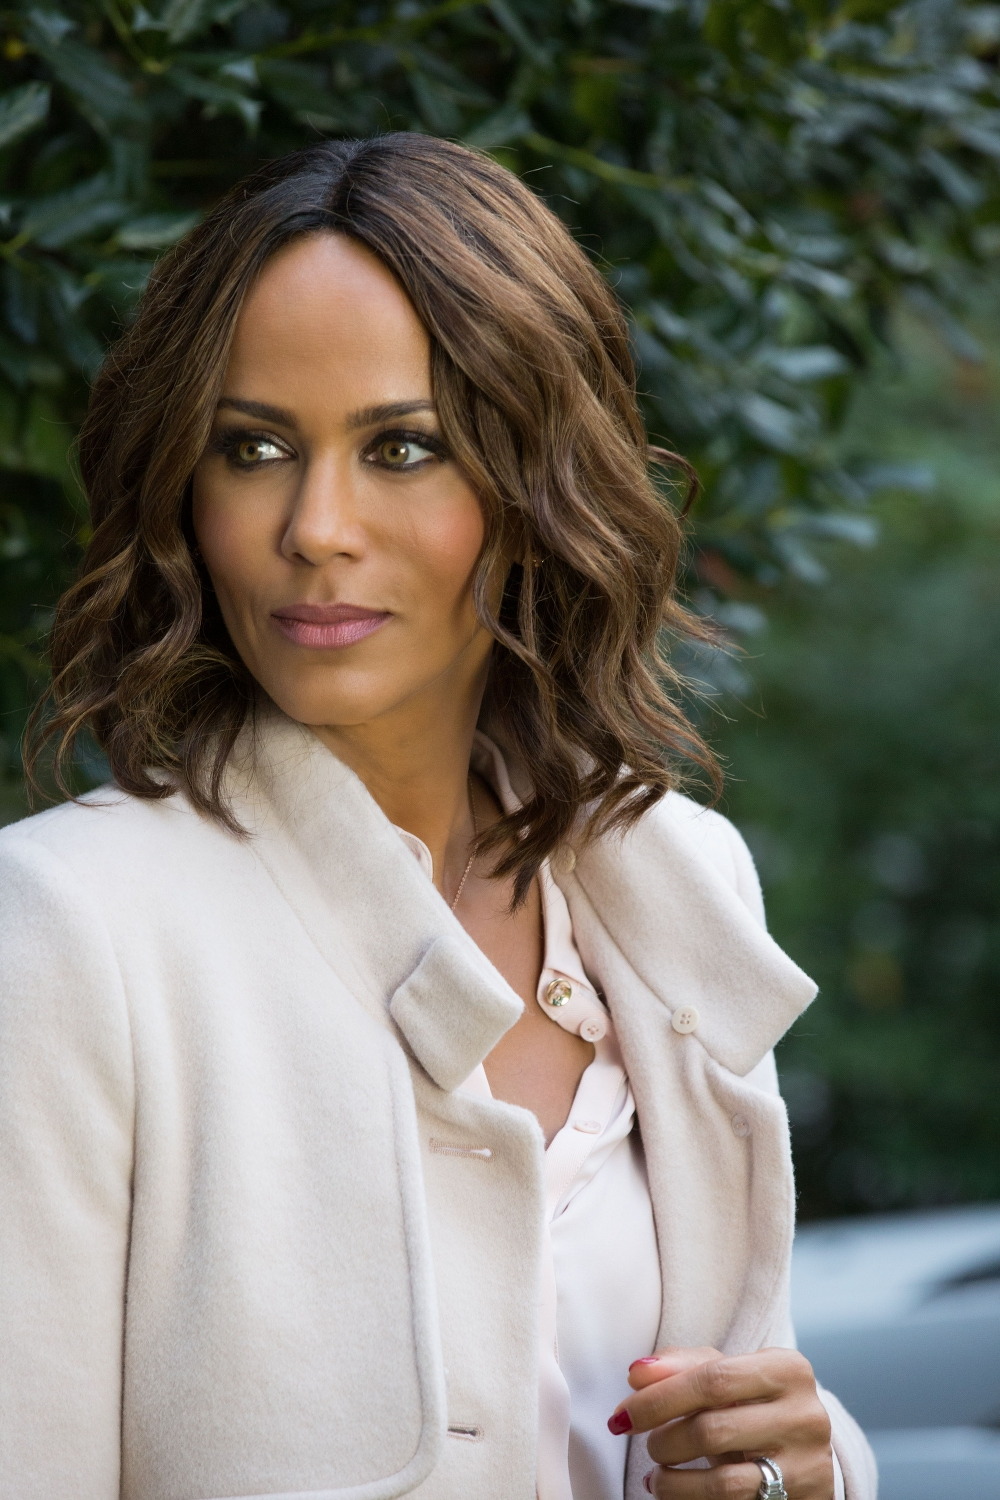 Nicole Ari Parker in ALMOST CHRISTMAS. (Photo by Quantrell D. Colbert / courtesy of Universal Pictures).